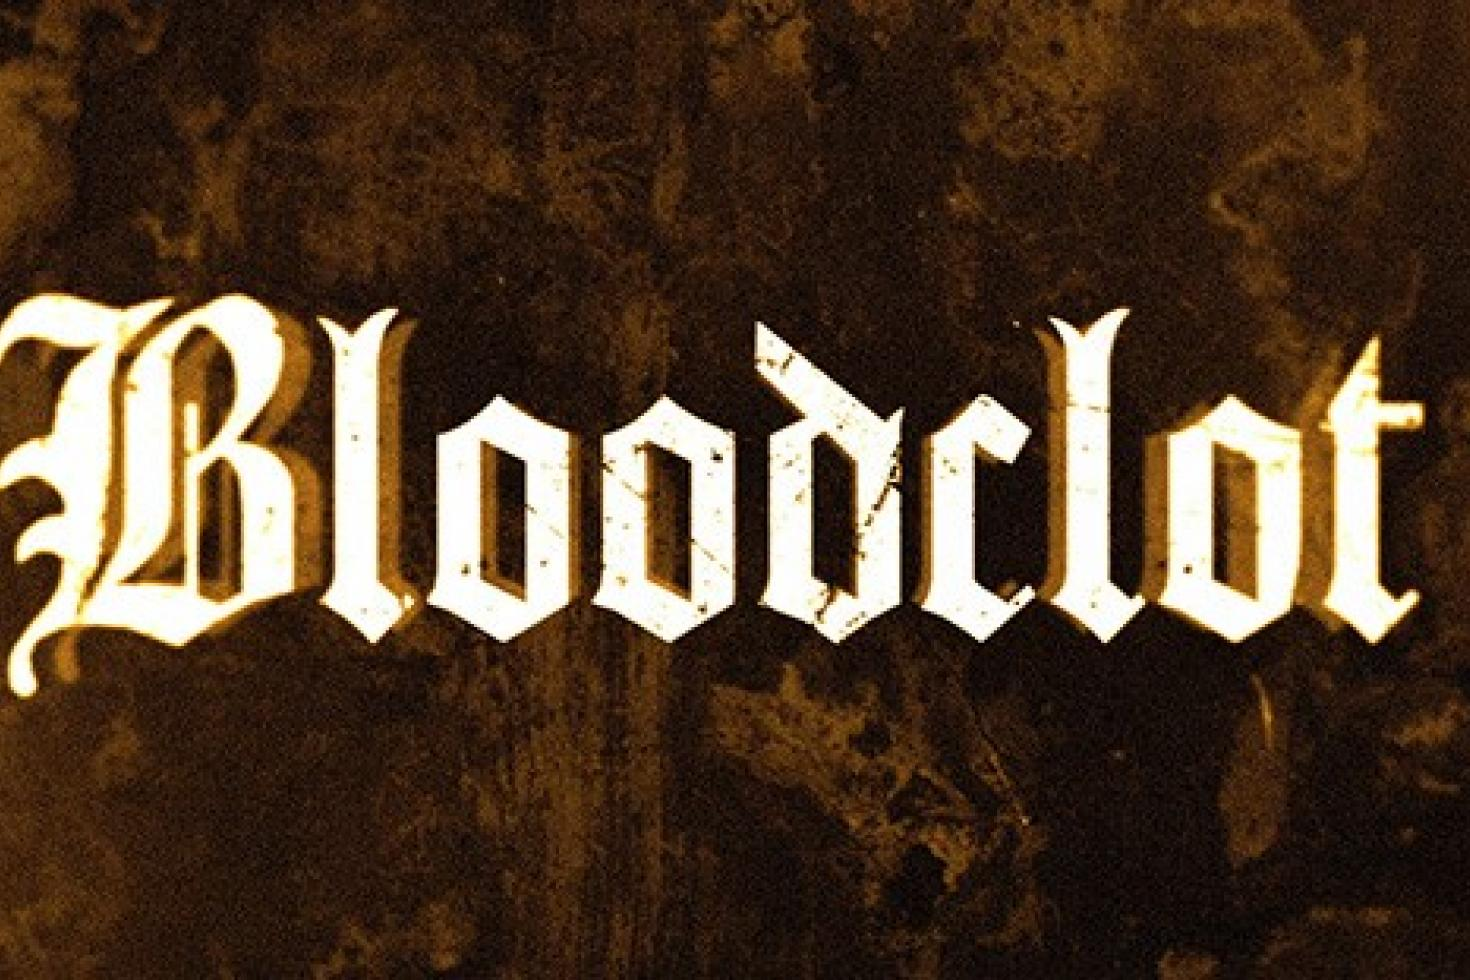 News - Bloodclot launches lyric video for